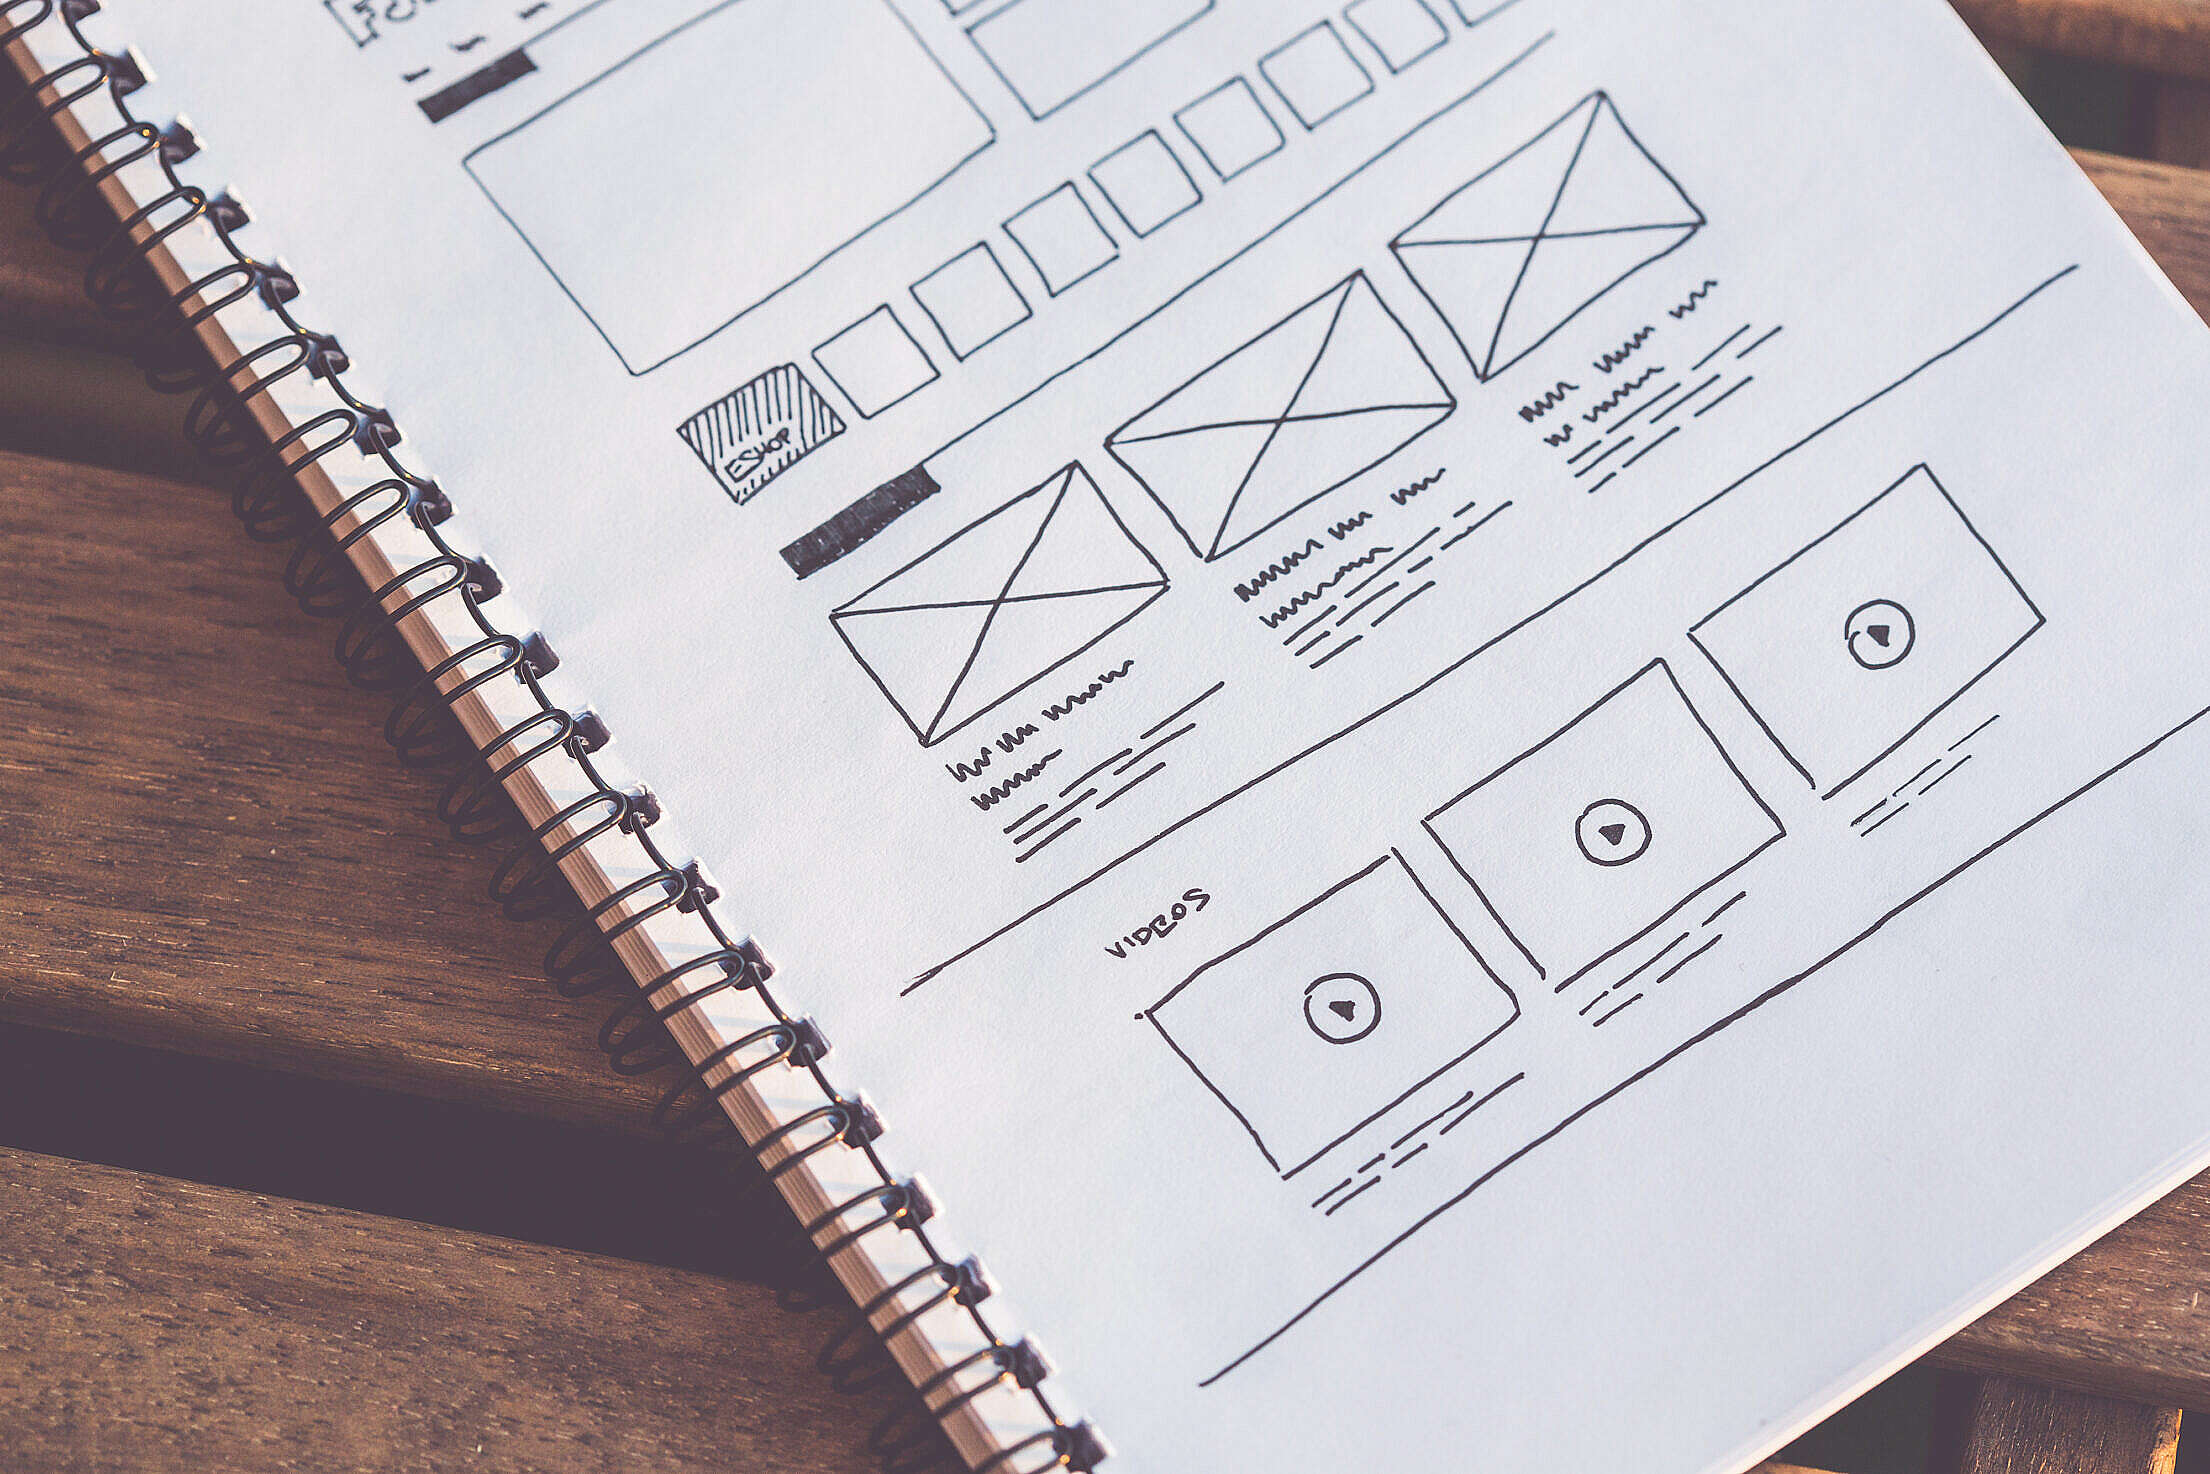 Startup Website Layout Wireframes Ideas Sketched on Paper Free Stock Photo